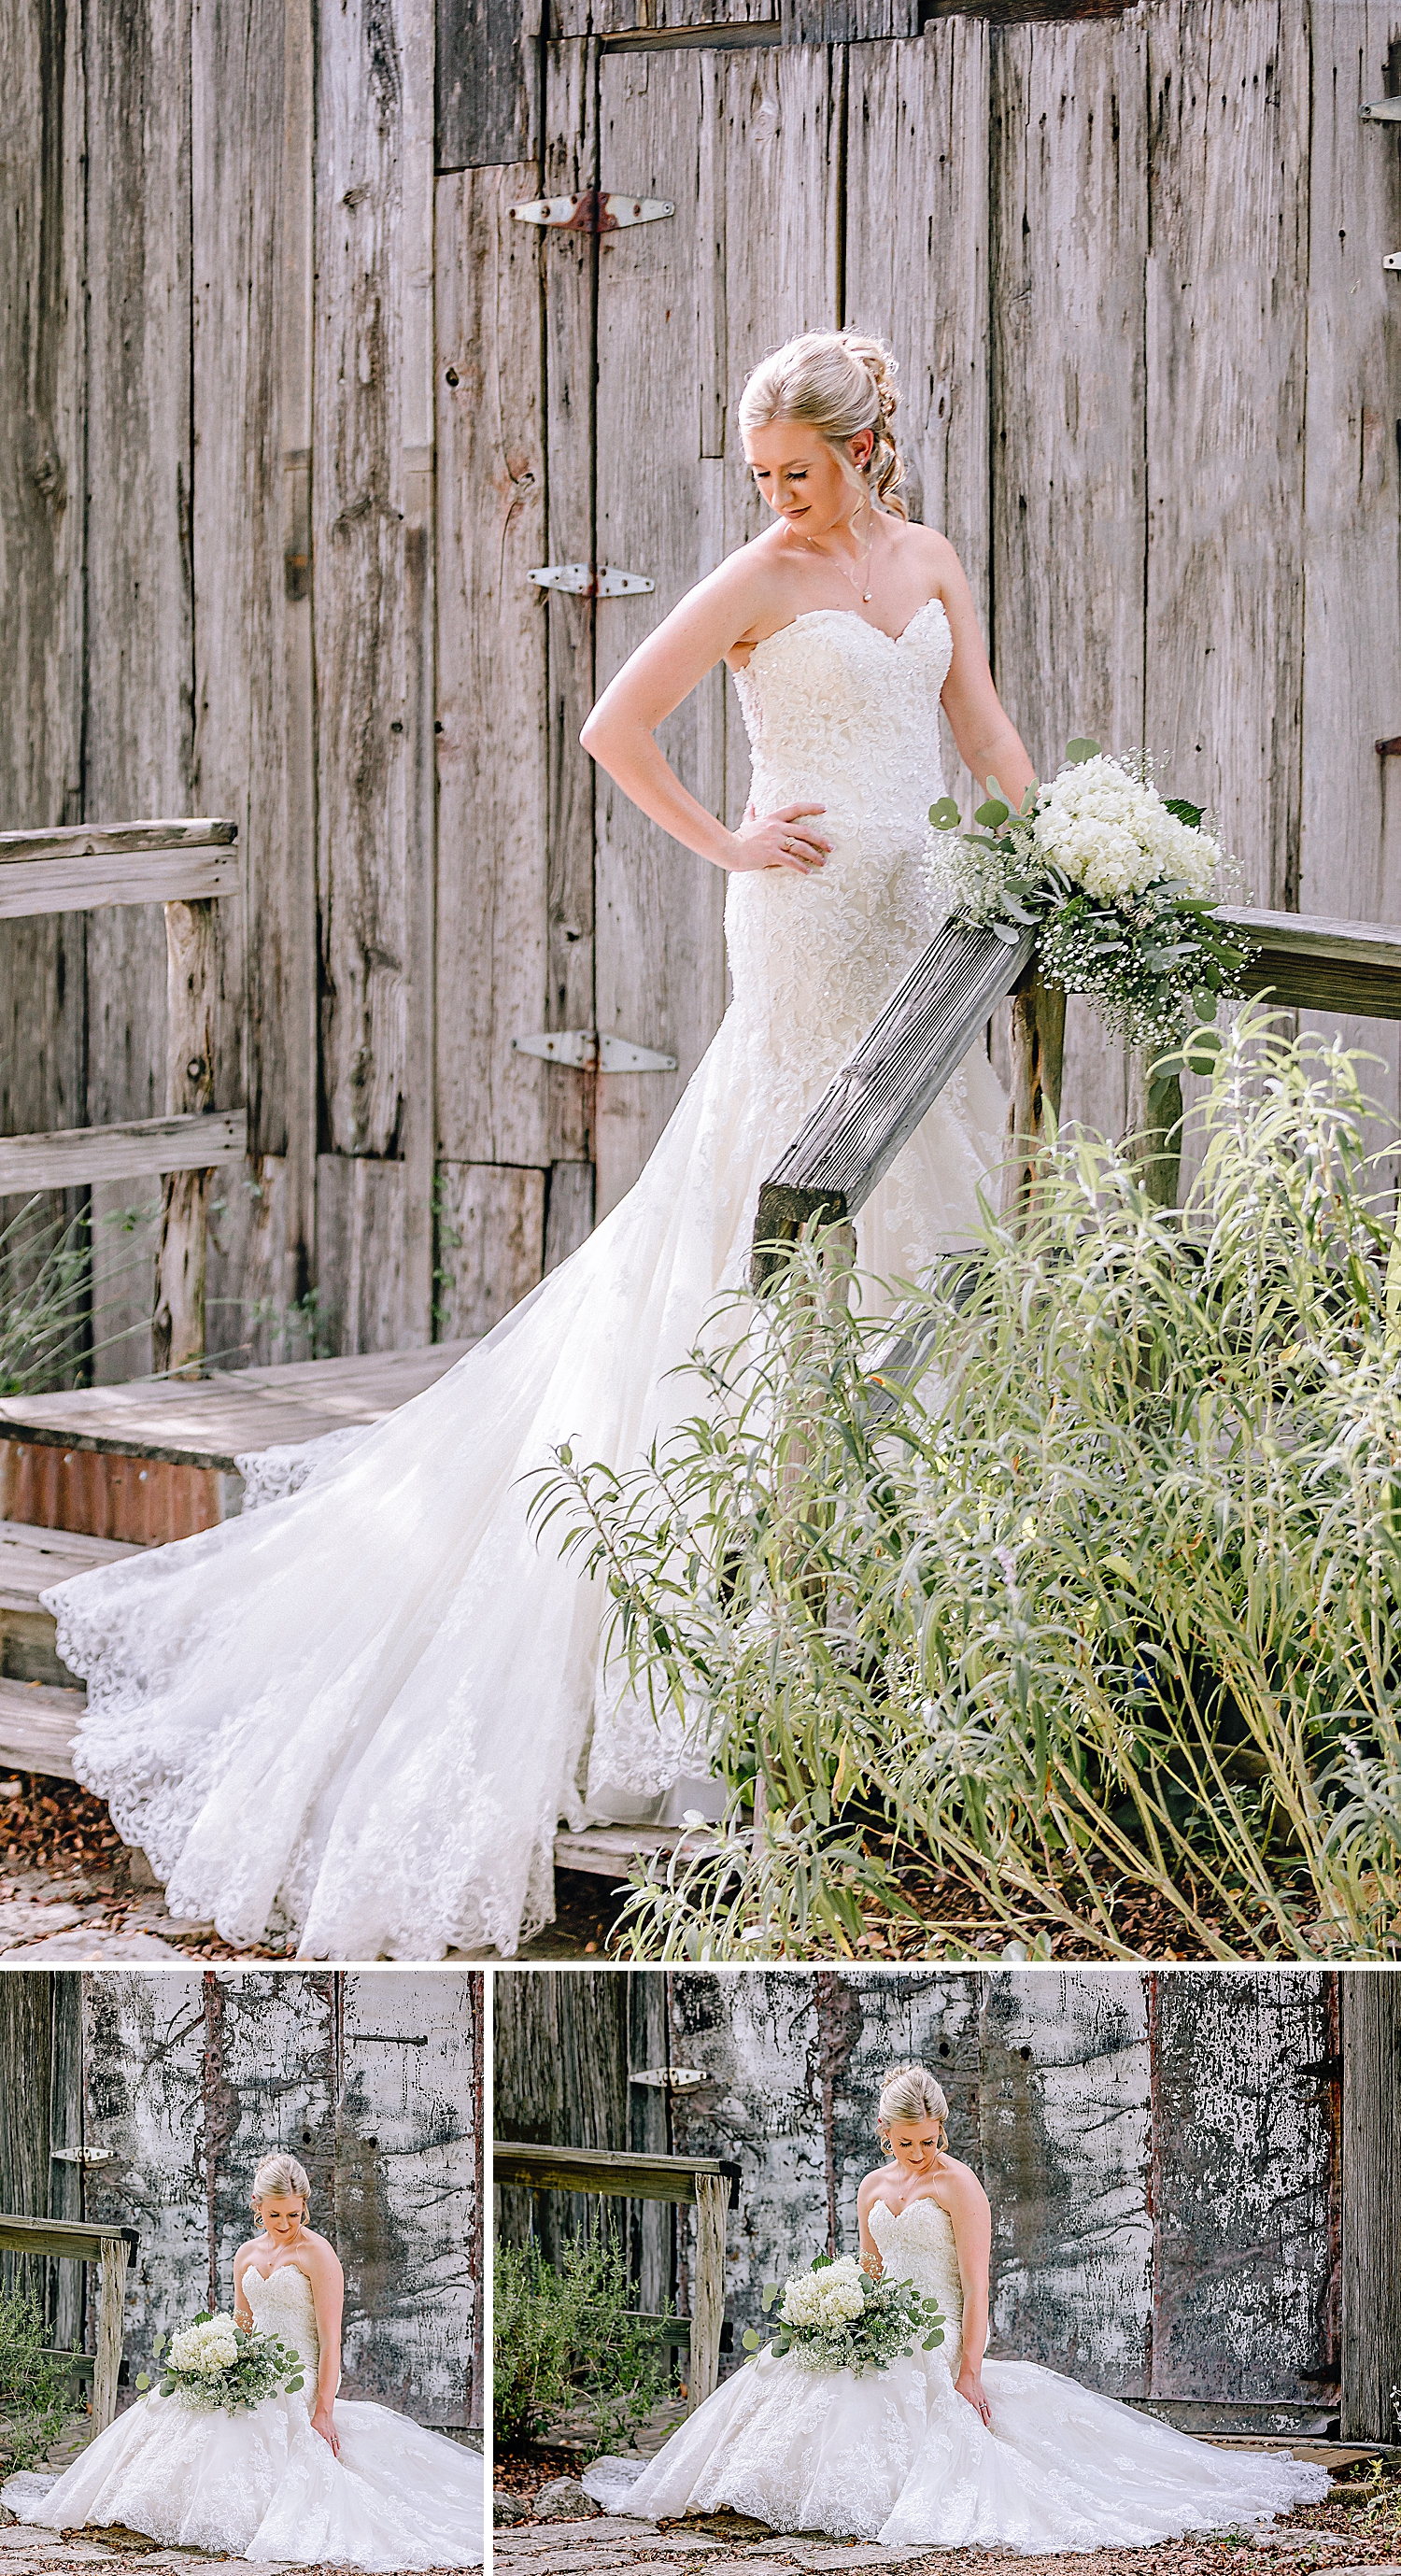 Carly-Barton-Photography-Bridal-Photos-Gruene-Rustic-New-Braunfels-Wedding-Photographer_0024.jpg